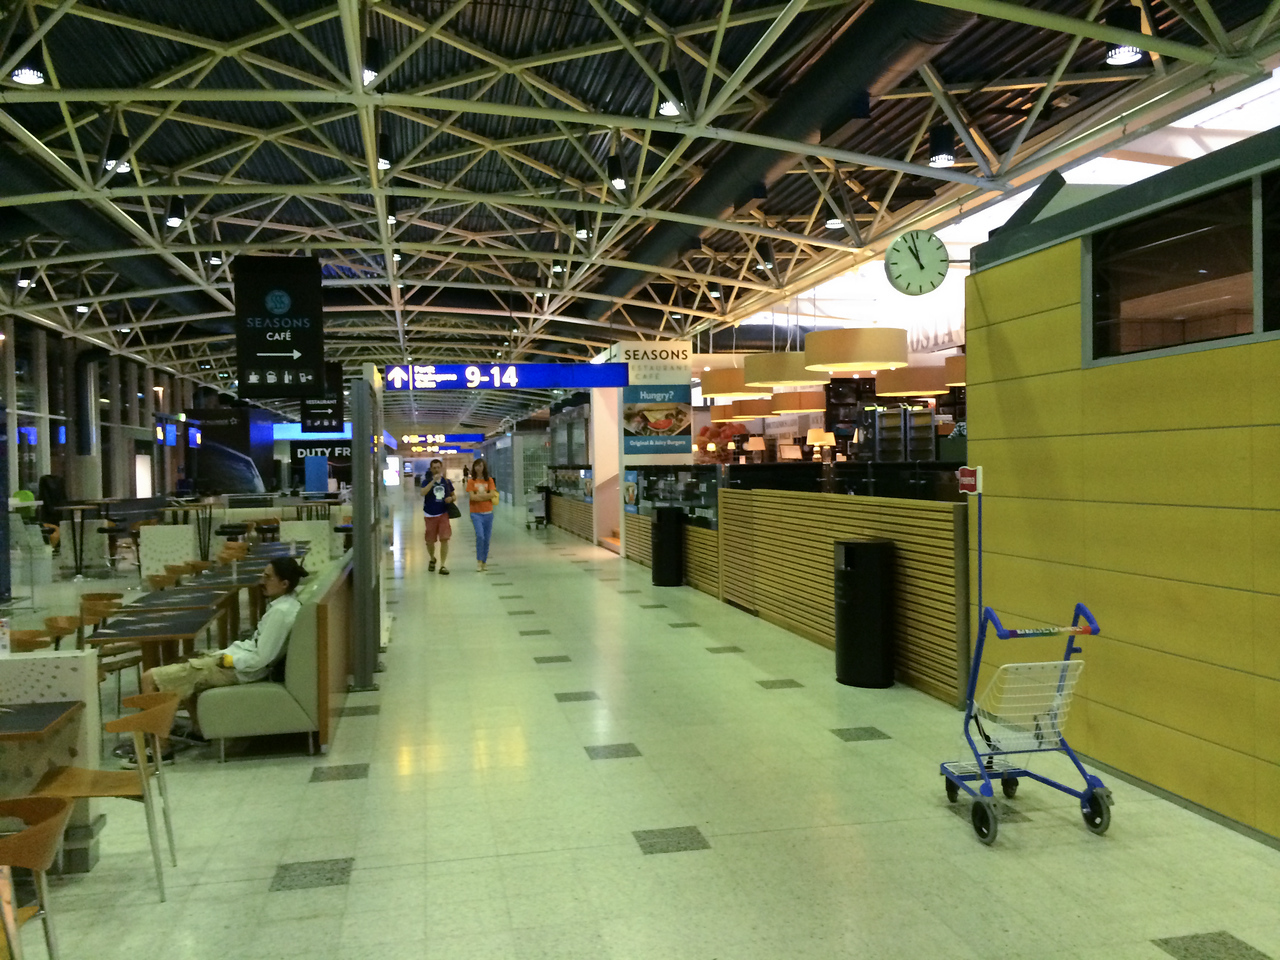 Helsinki - Airports look pretty much the same...